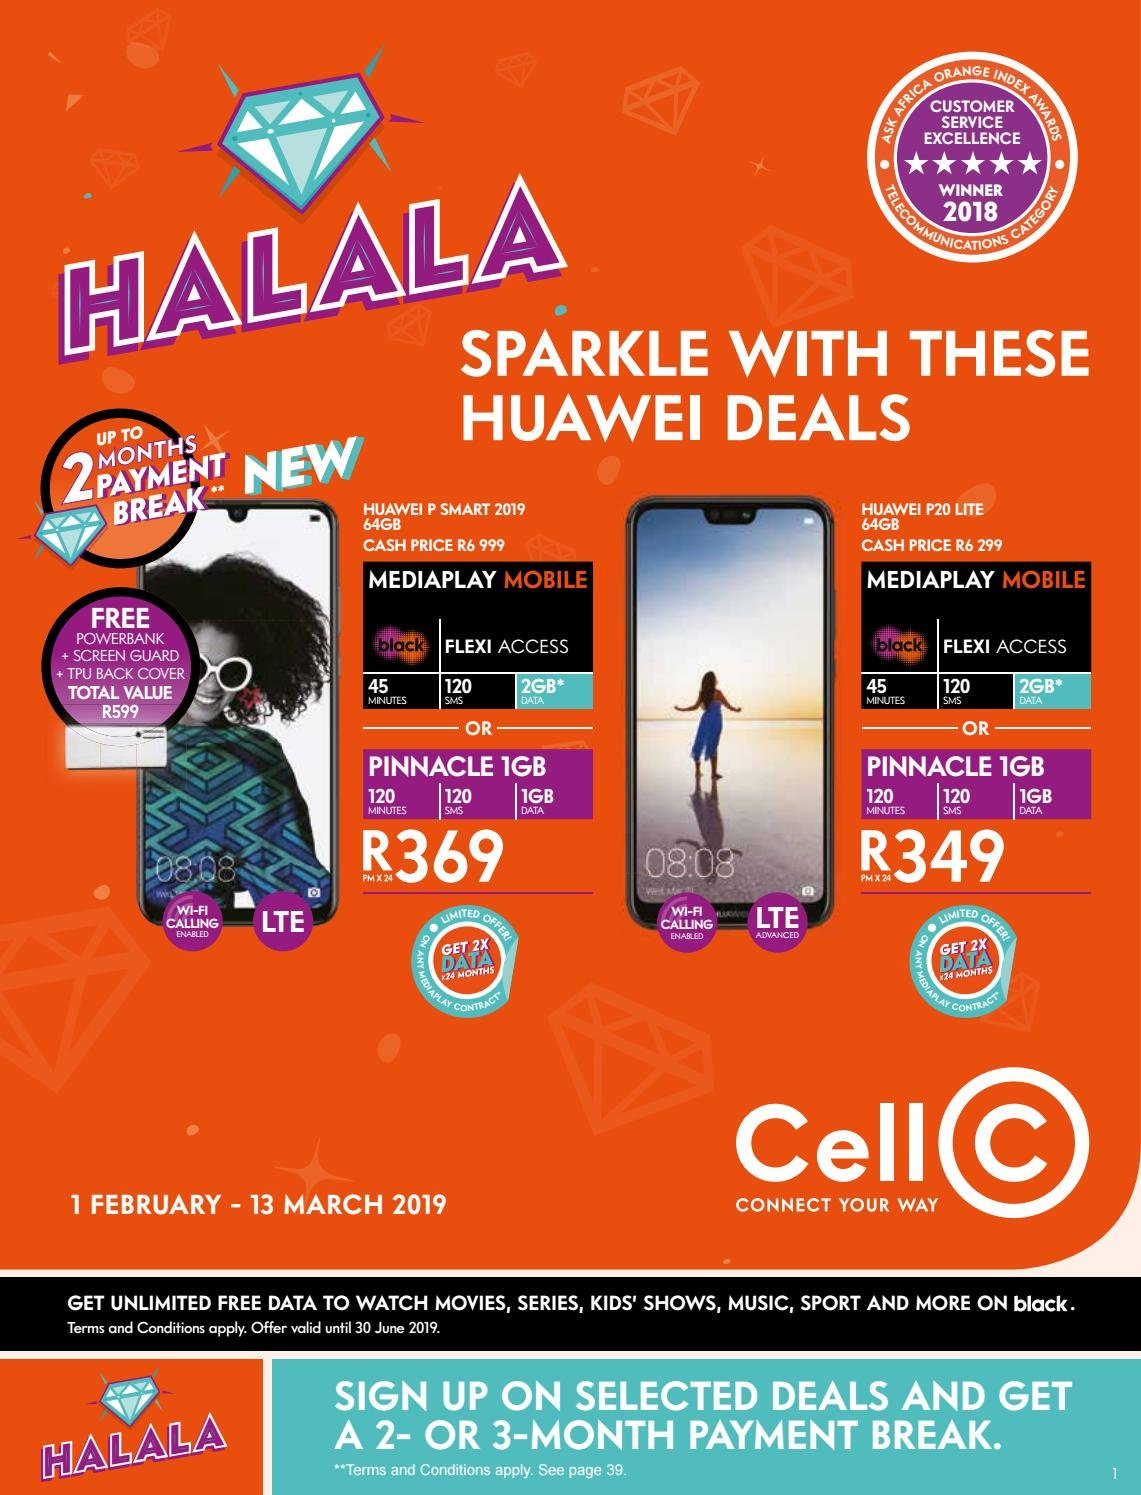 Cell C special - 02.01.2019 - 03.13.2019 - Sales products - lte, watch, huawei. Page 1.